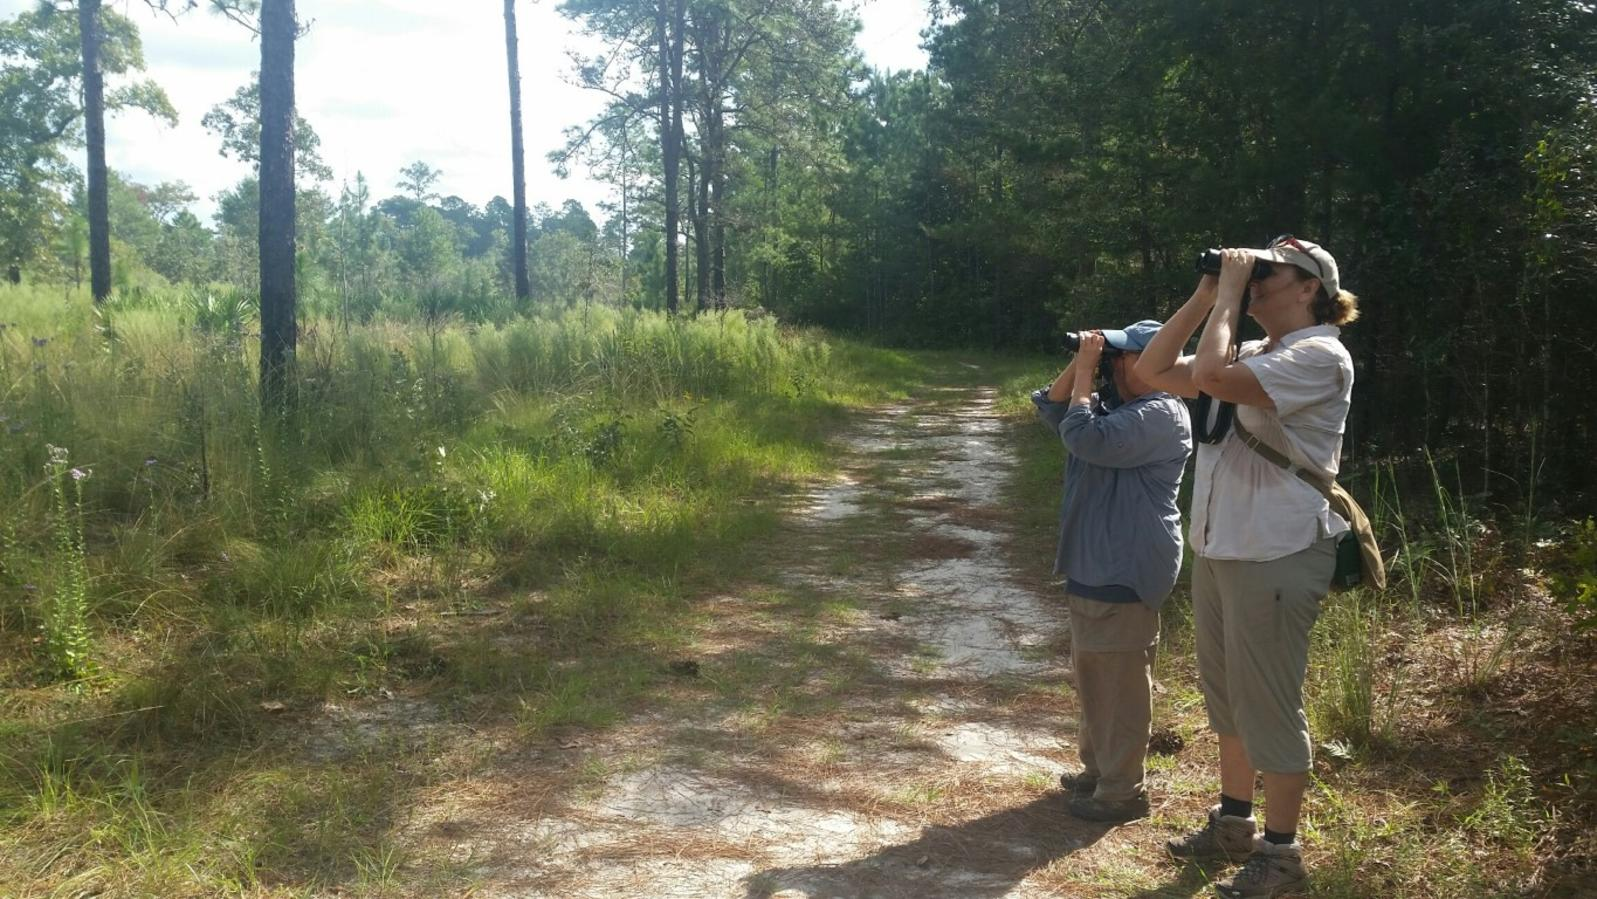 Image of volunteers surveying Julington-Durbin Preserve